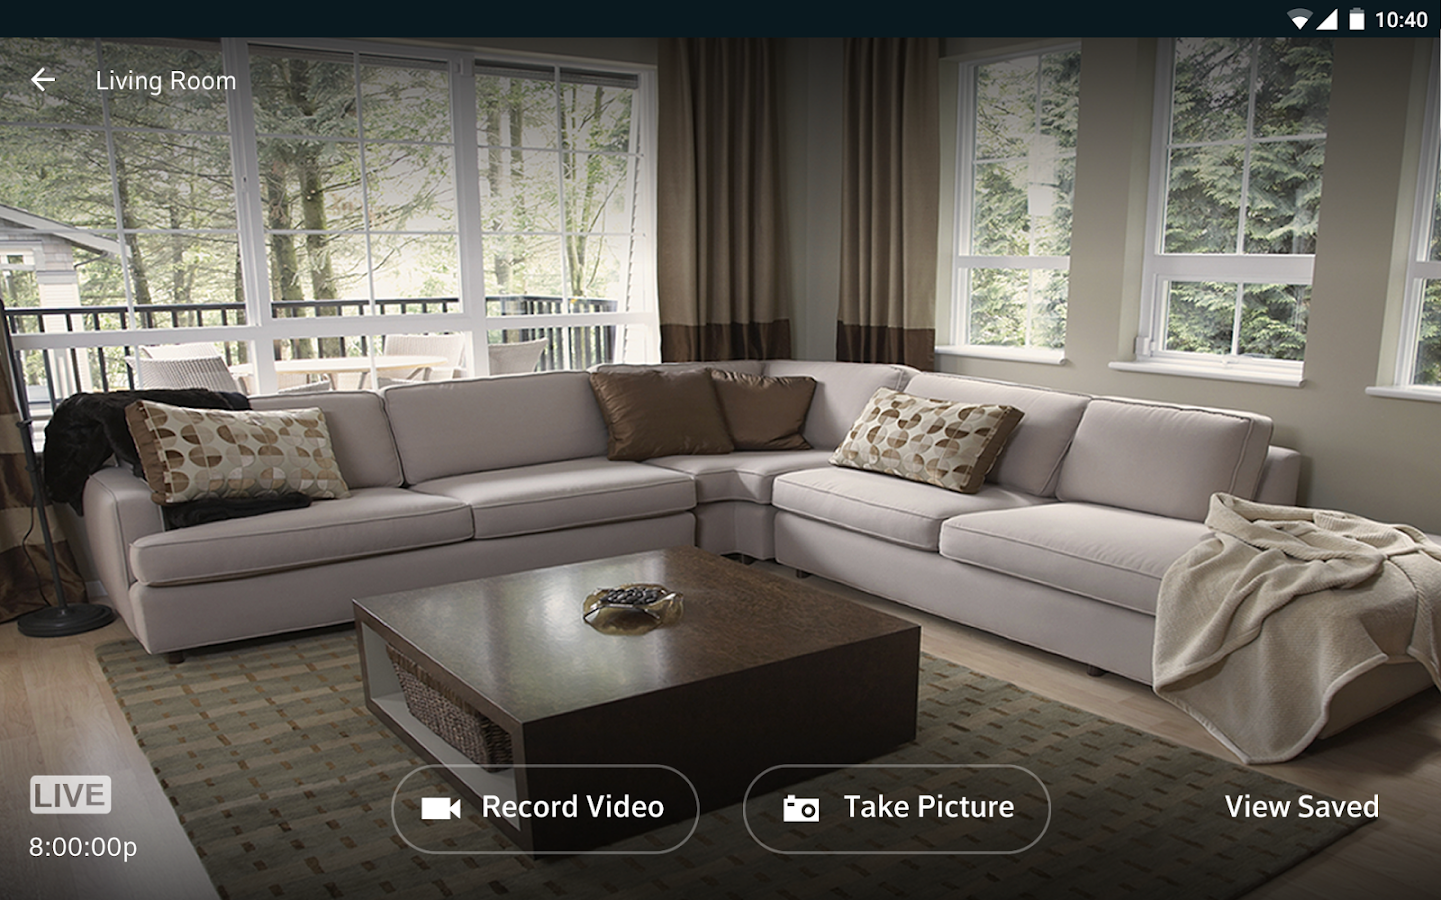 XFINITY Home- screenshot